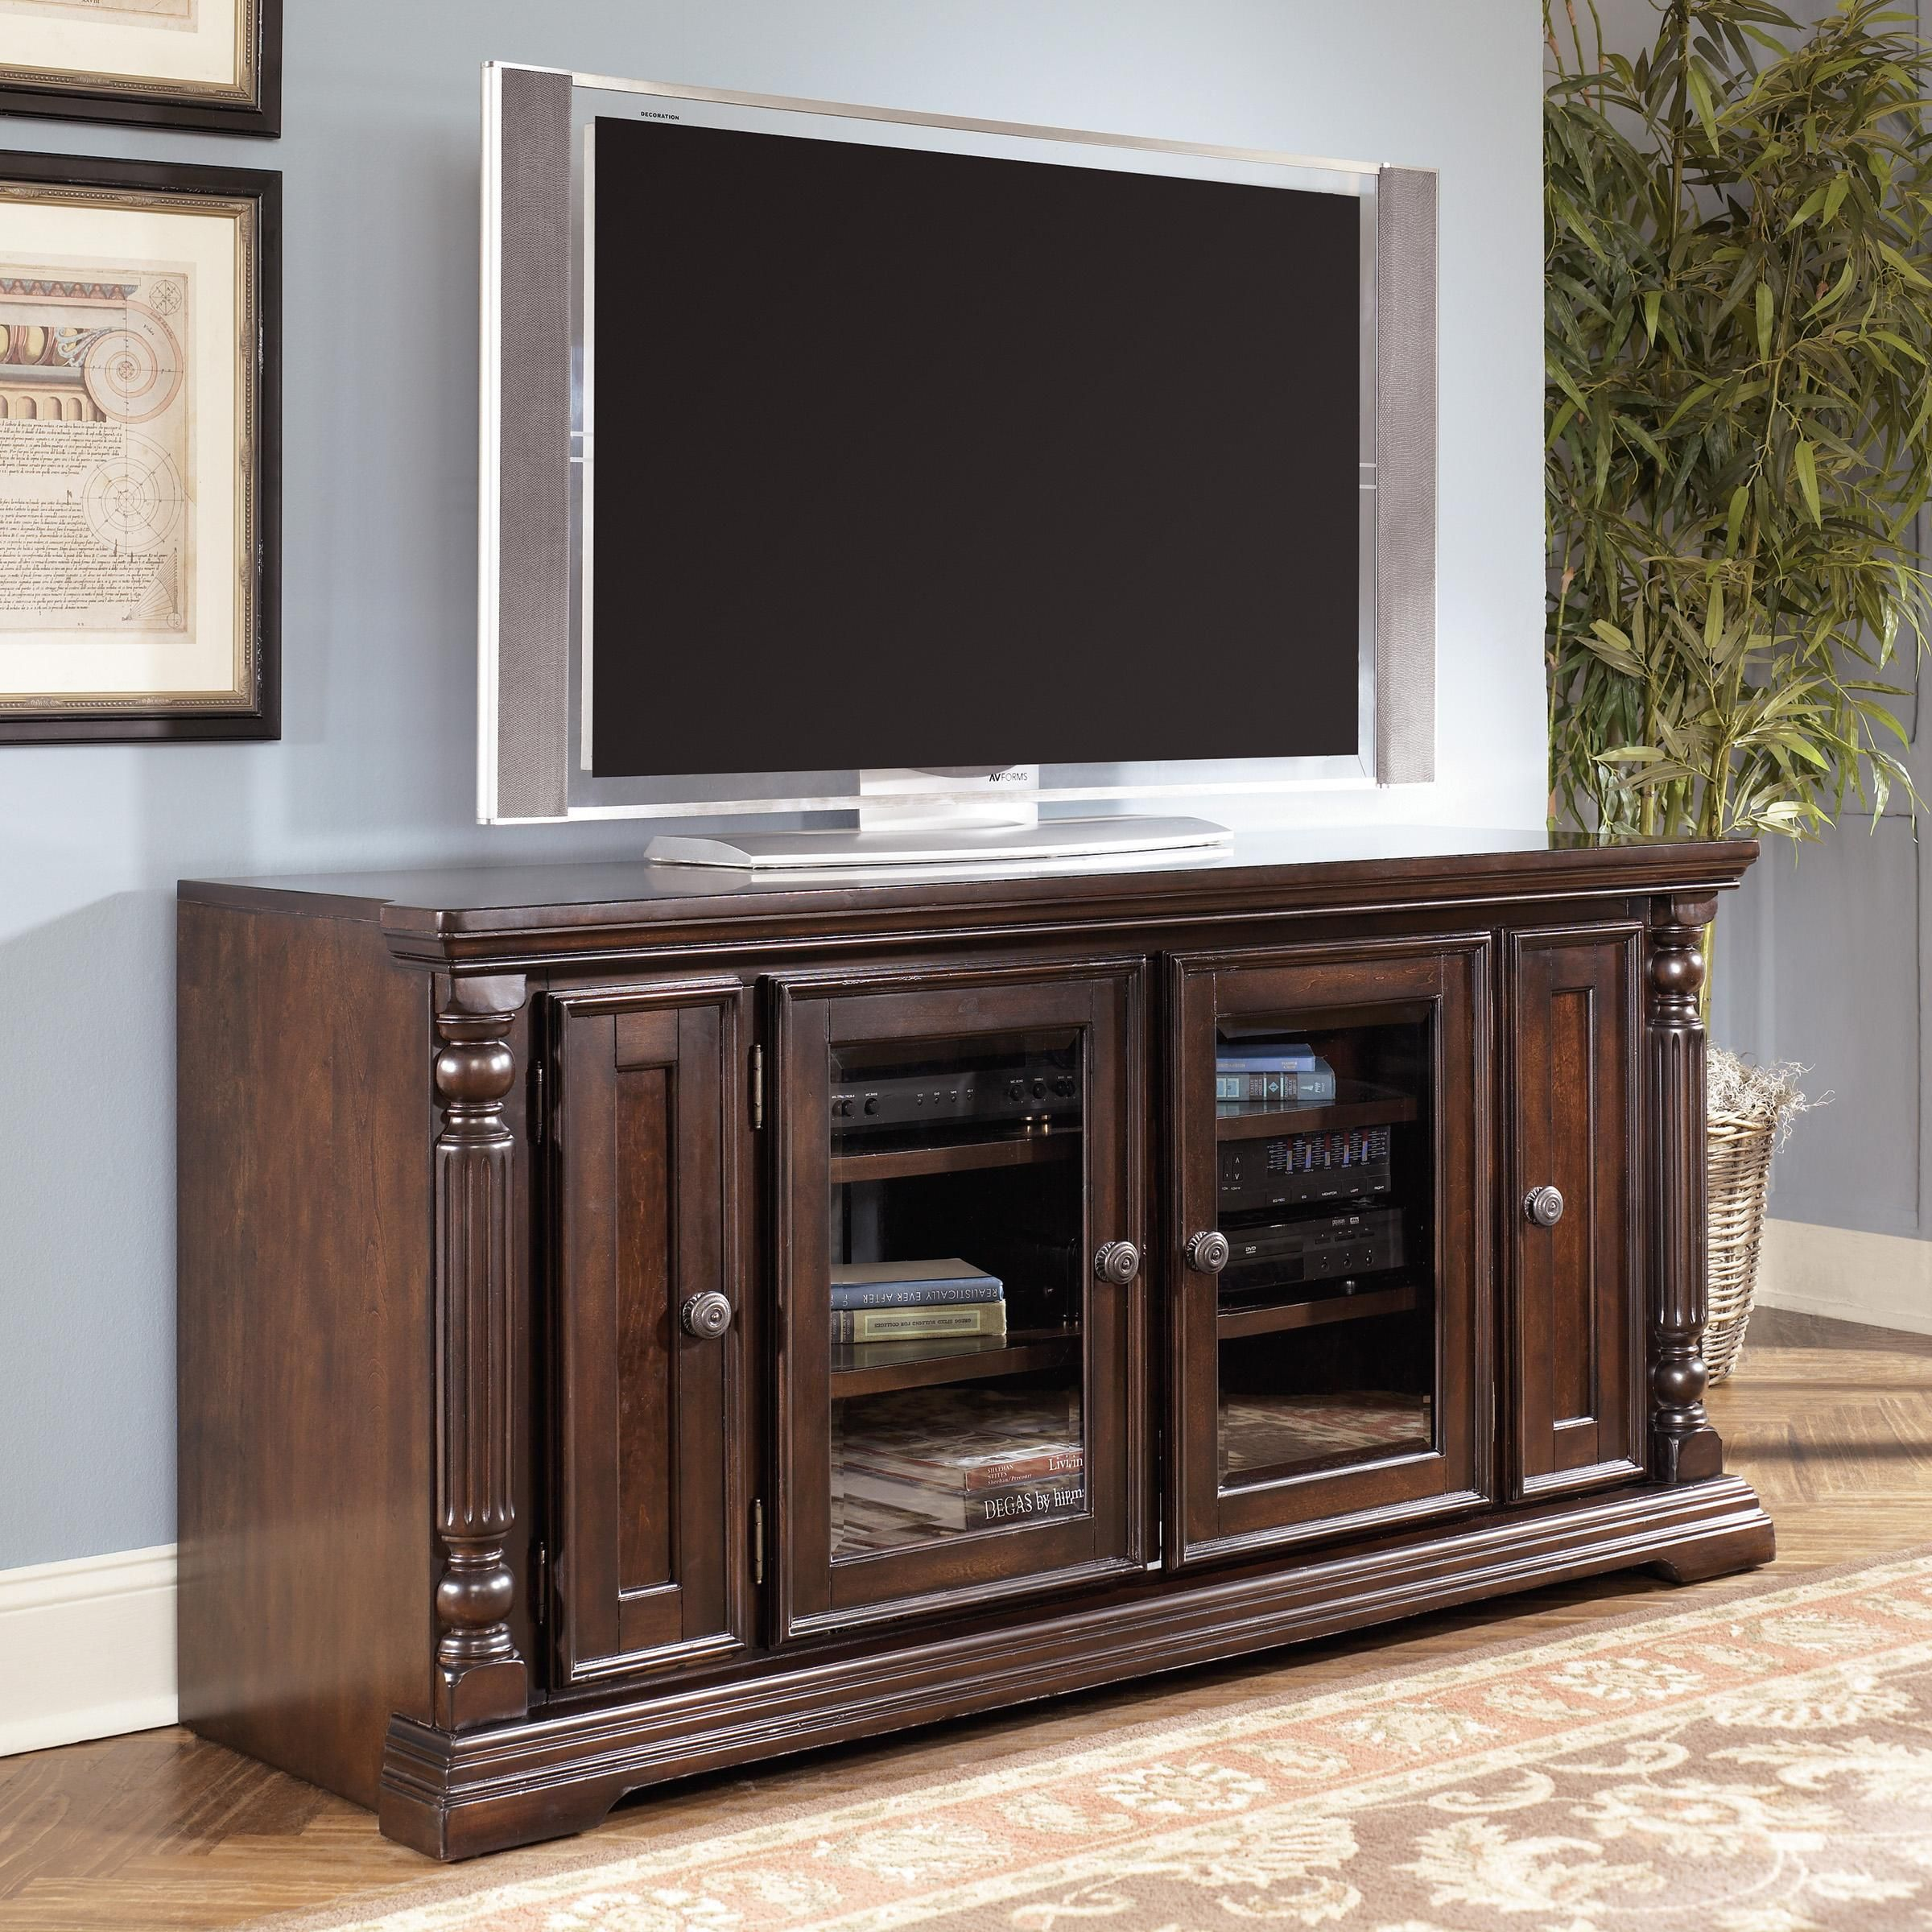 Great Tall TV Stand